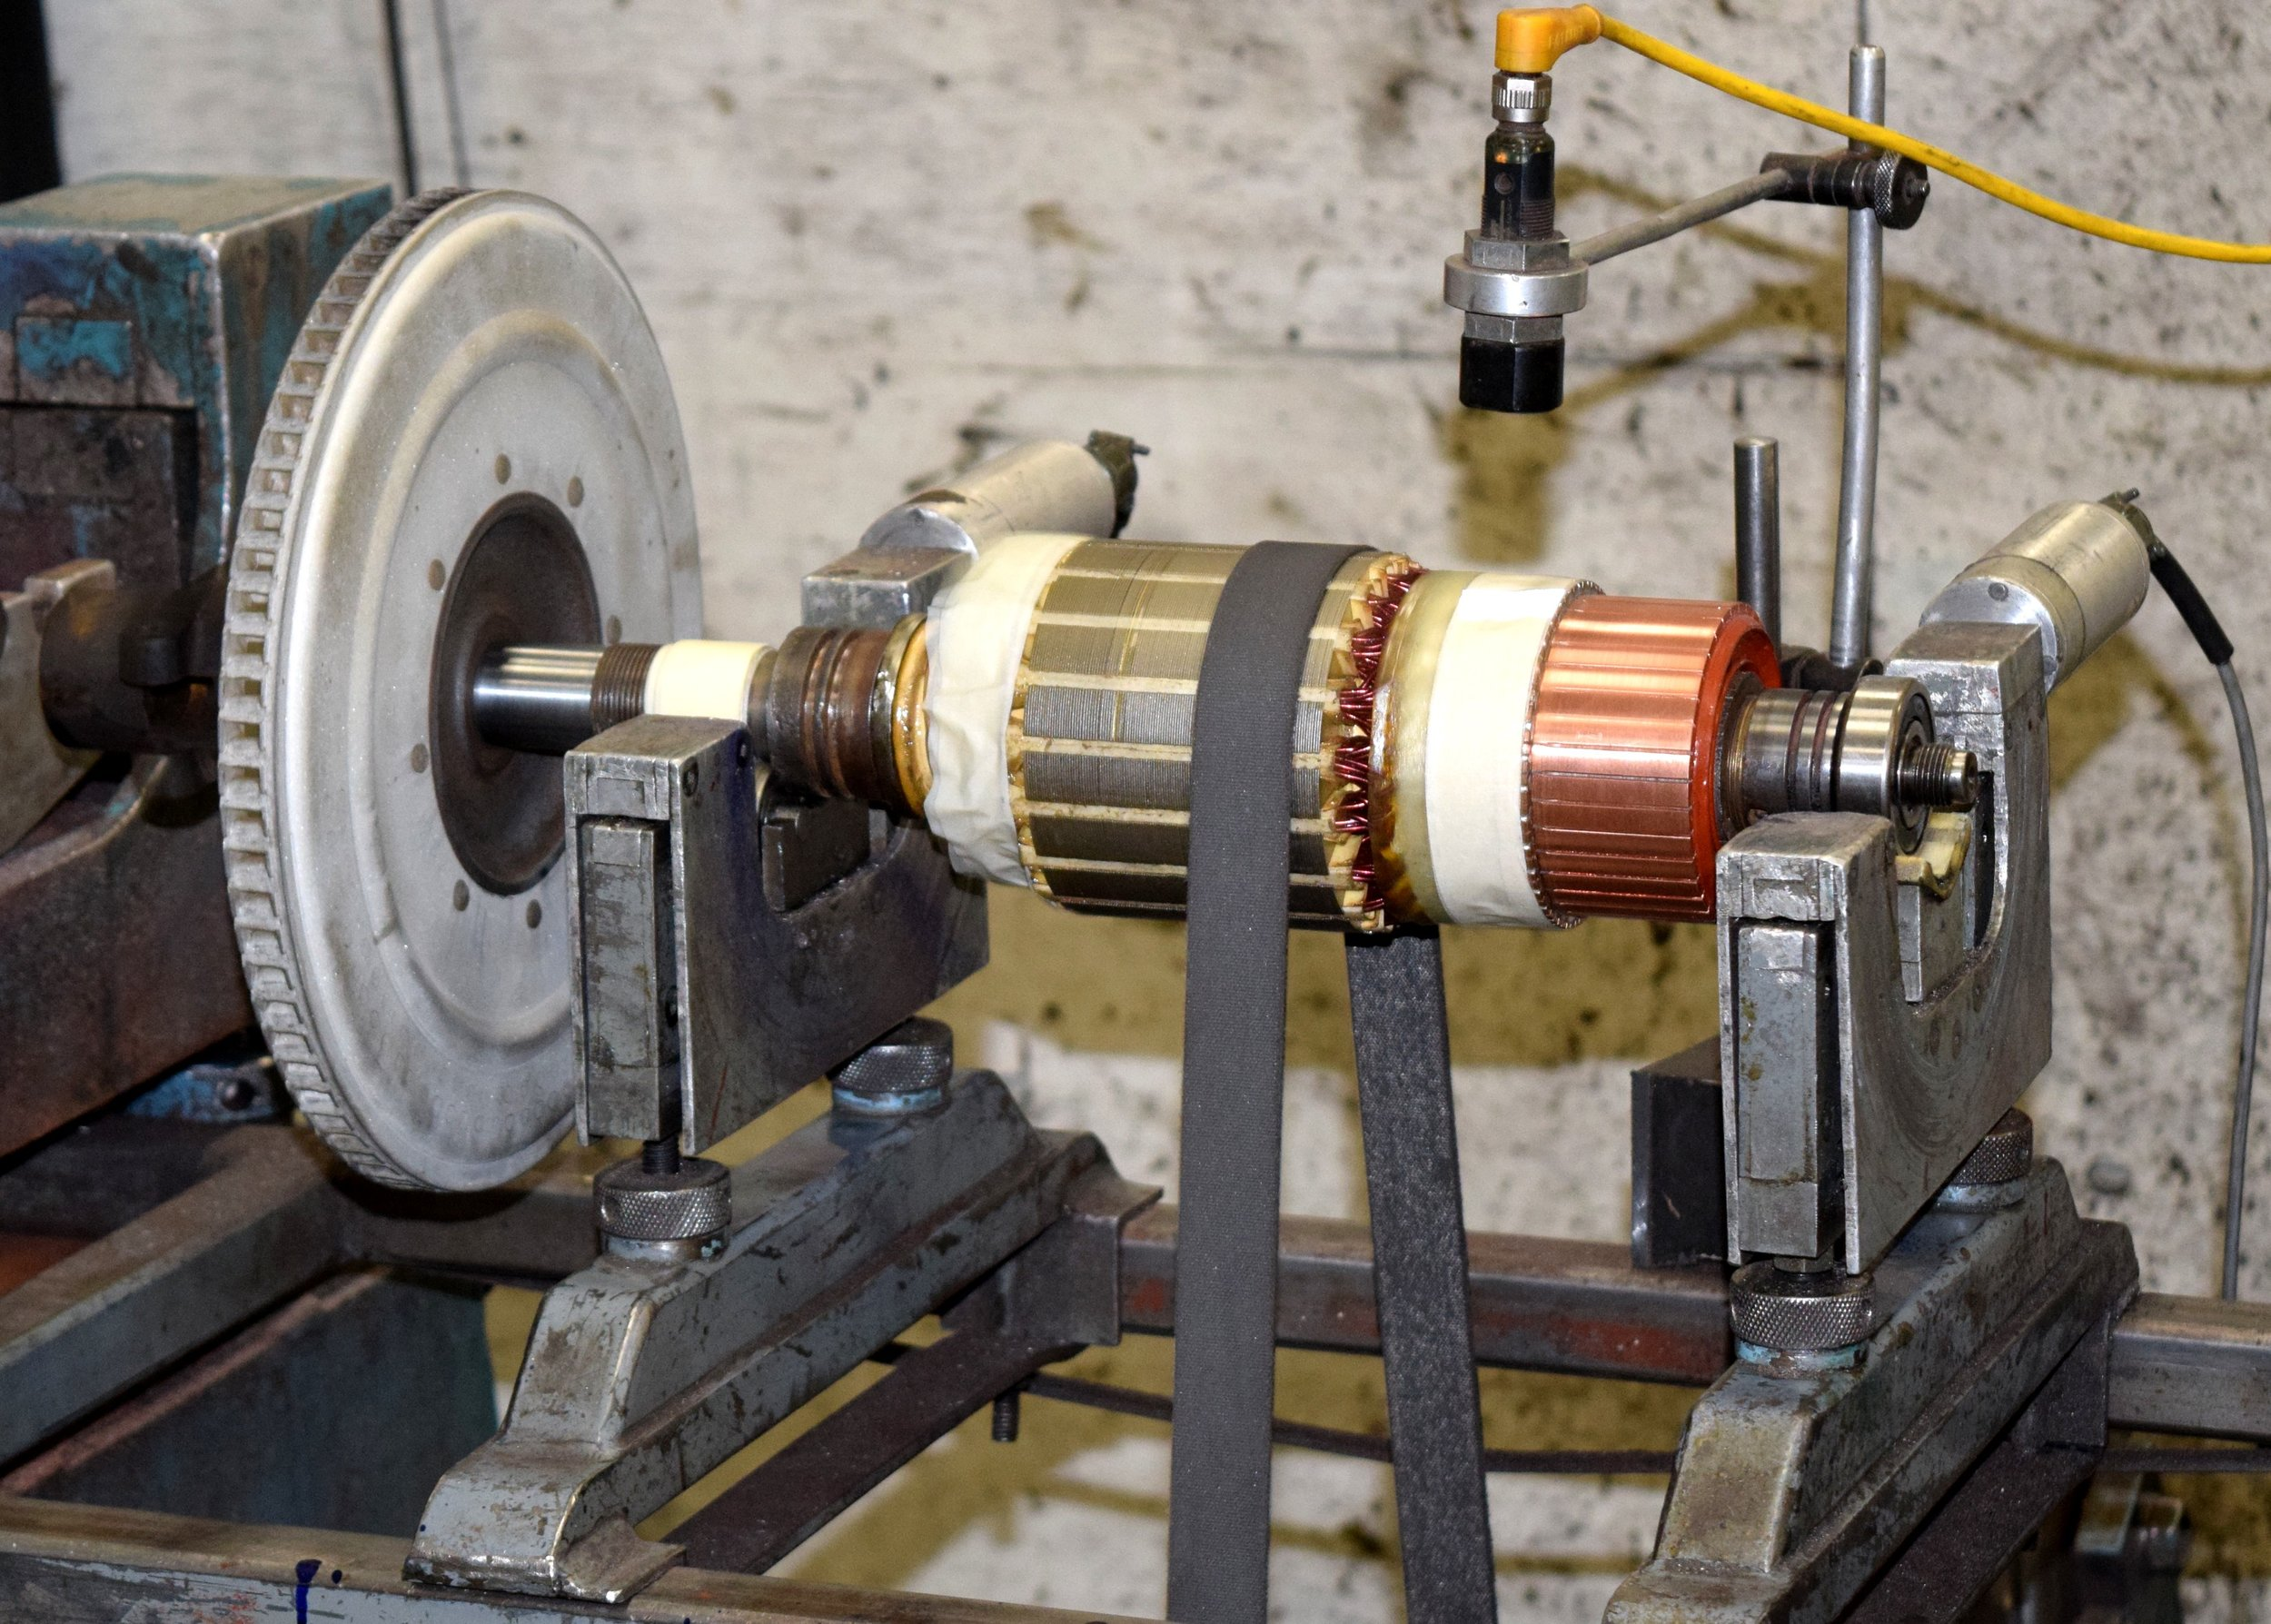 set up for balacning blades and armature.JPG